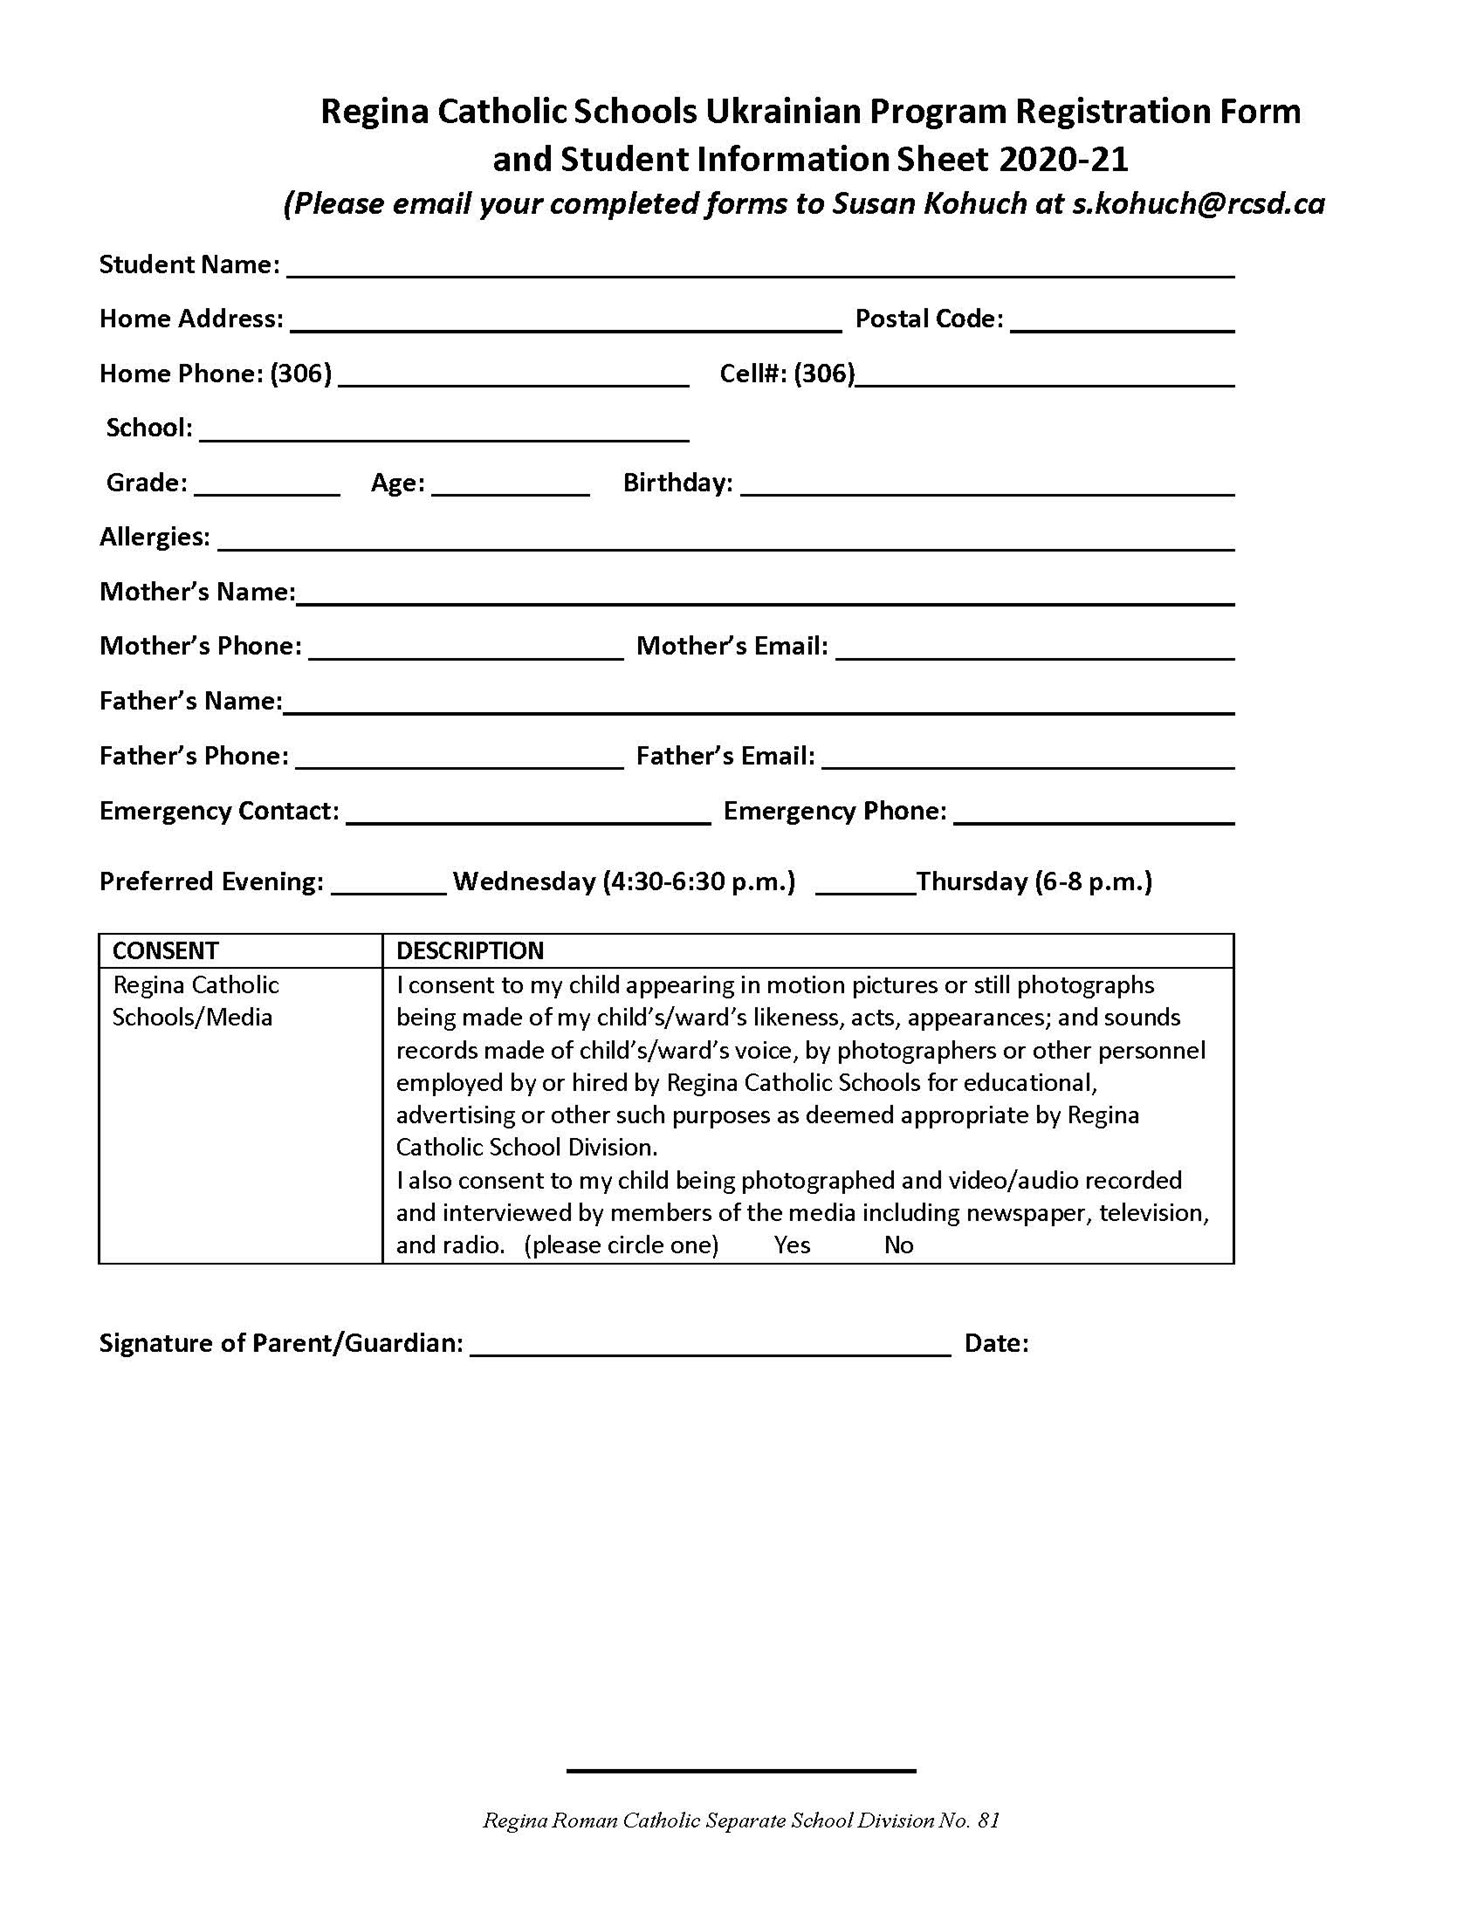 RCSD Students Ukrainian Program Registration Form 2020 - 2021 (002)_Page_2.jpg